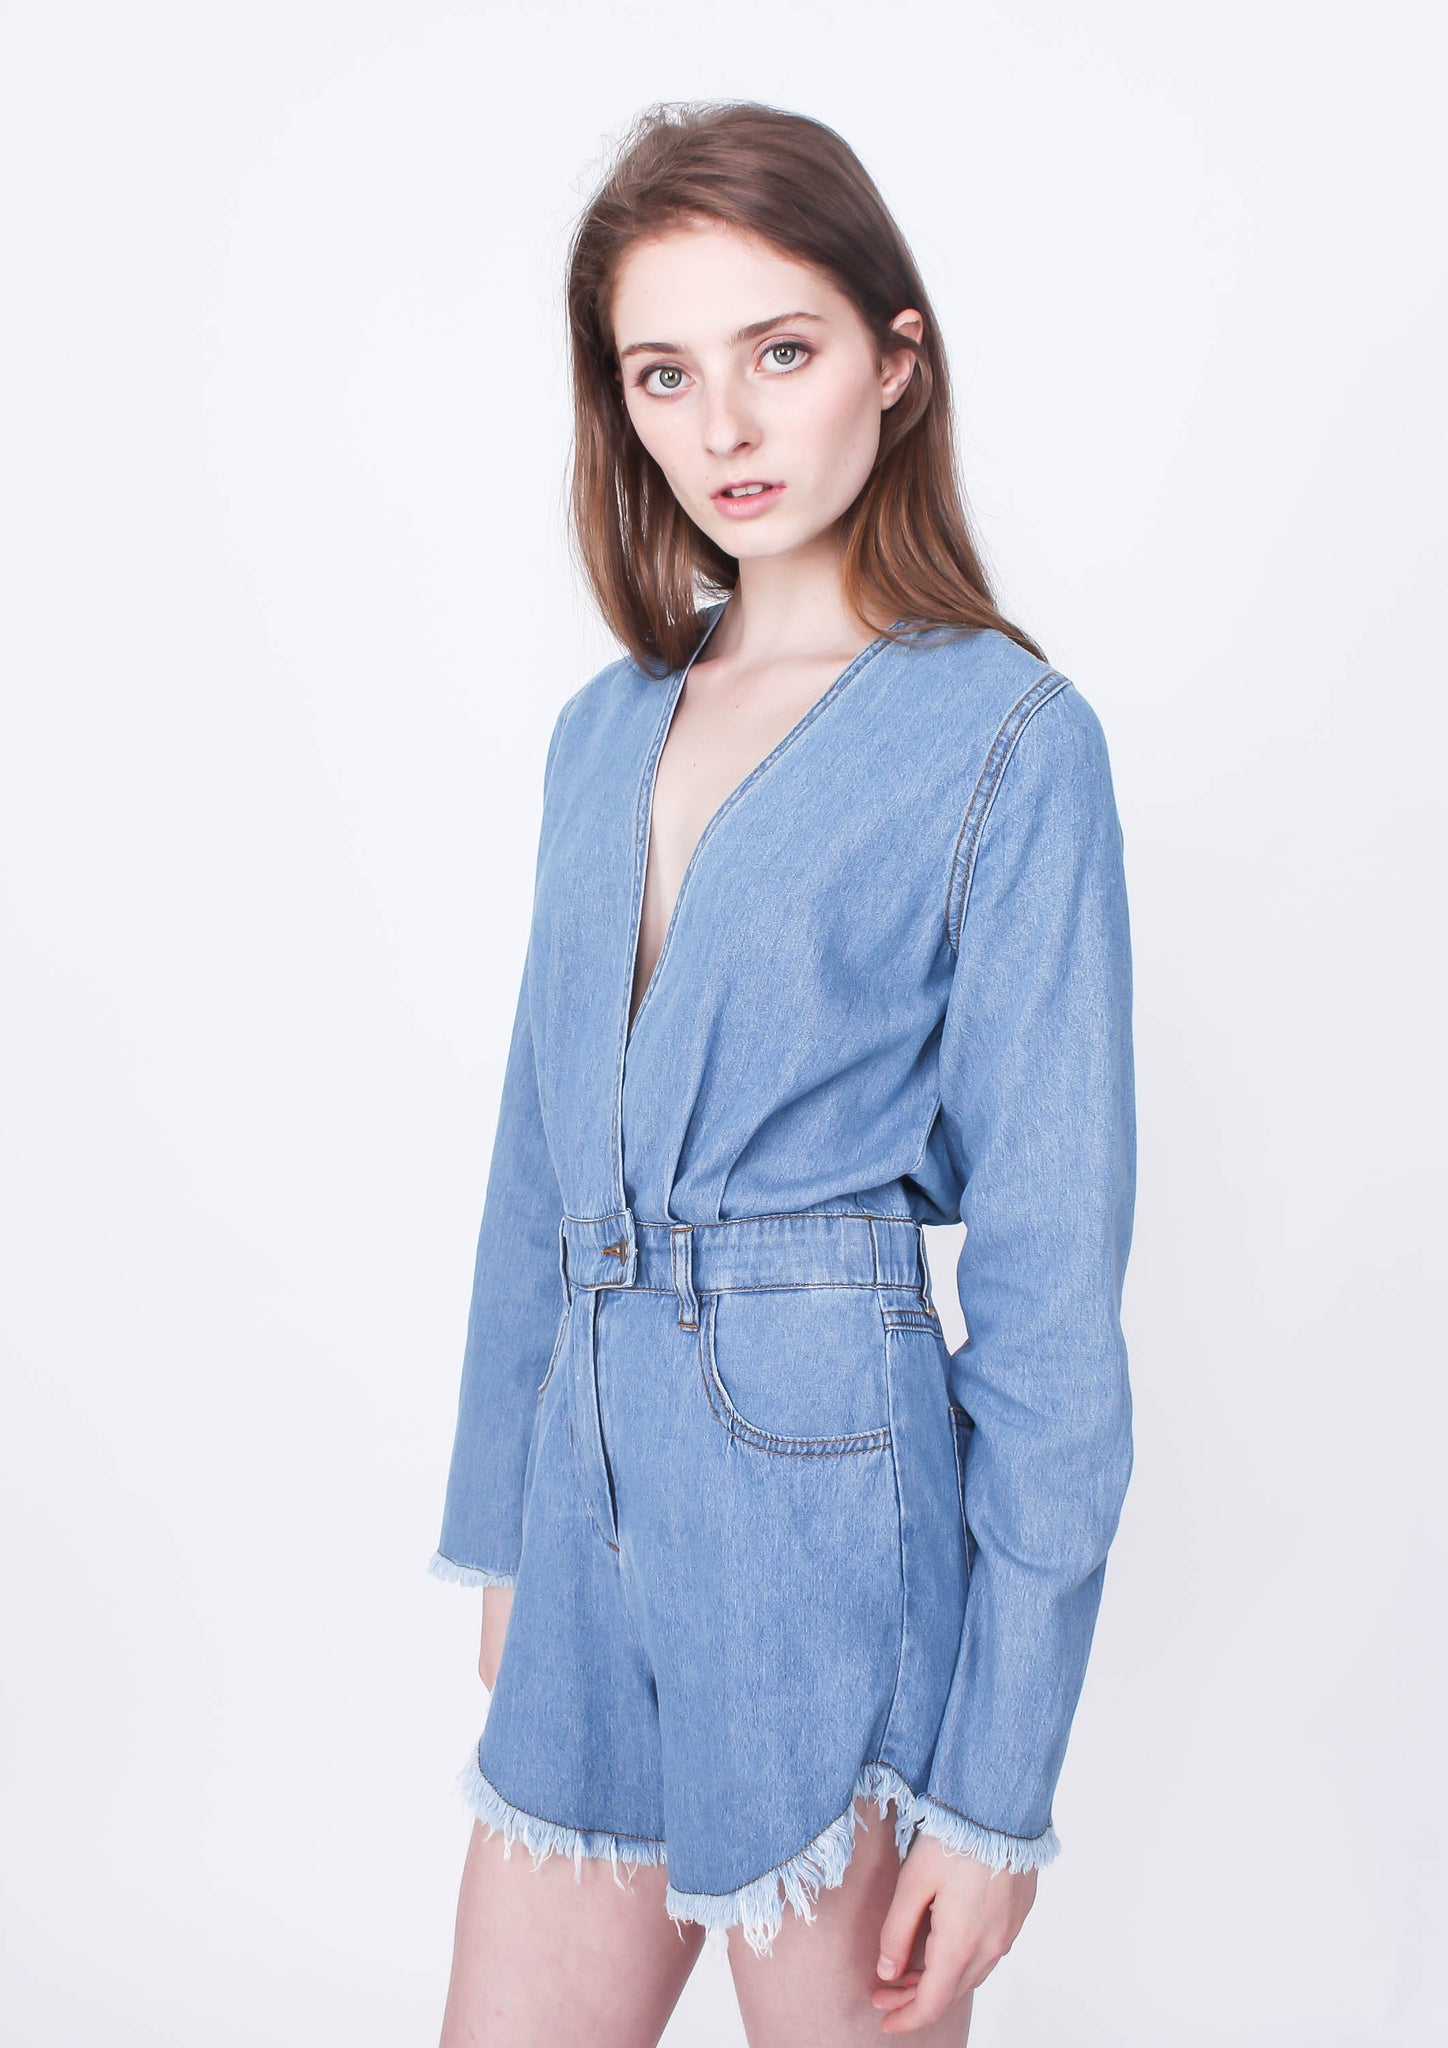 Out of Town Denim Playsuit - Moxie